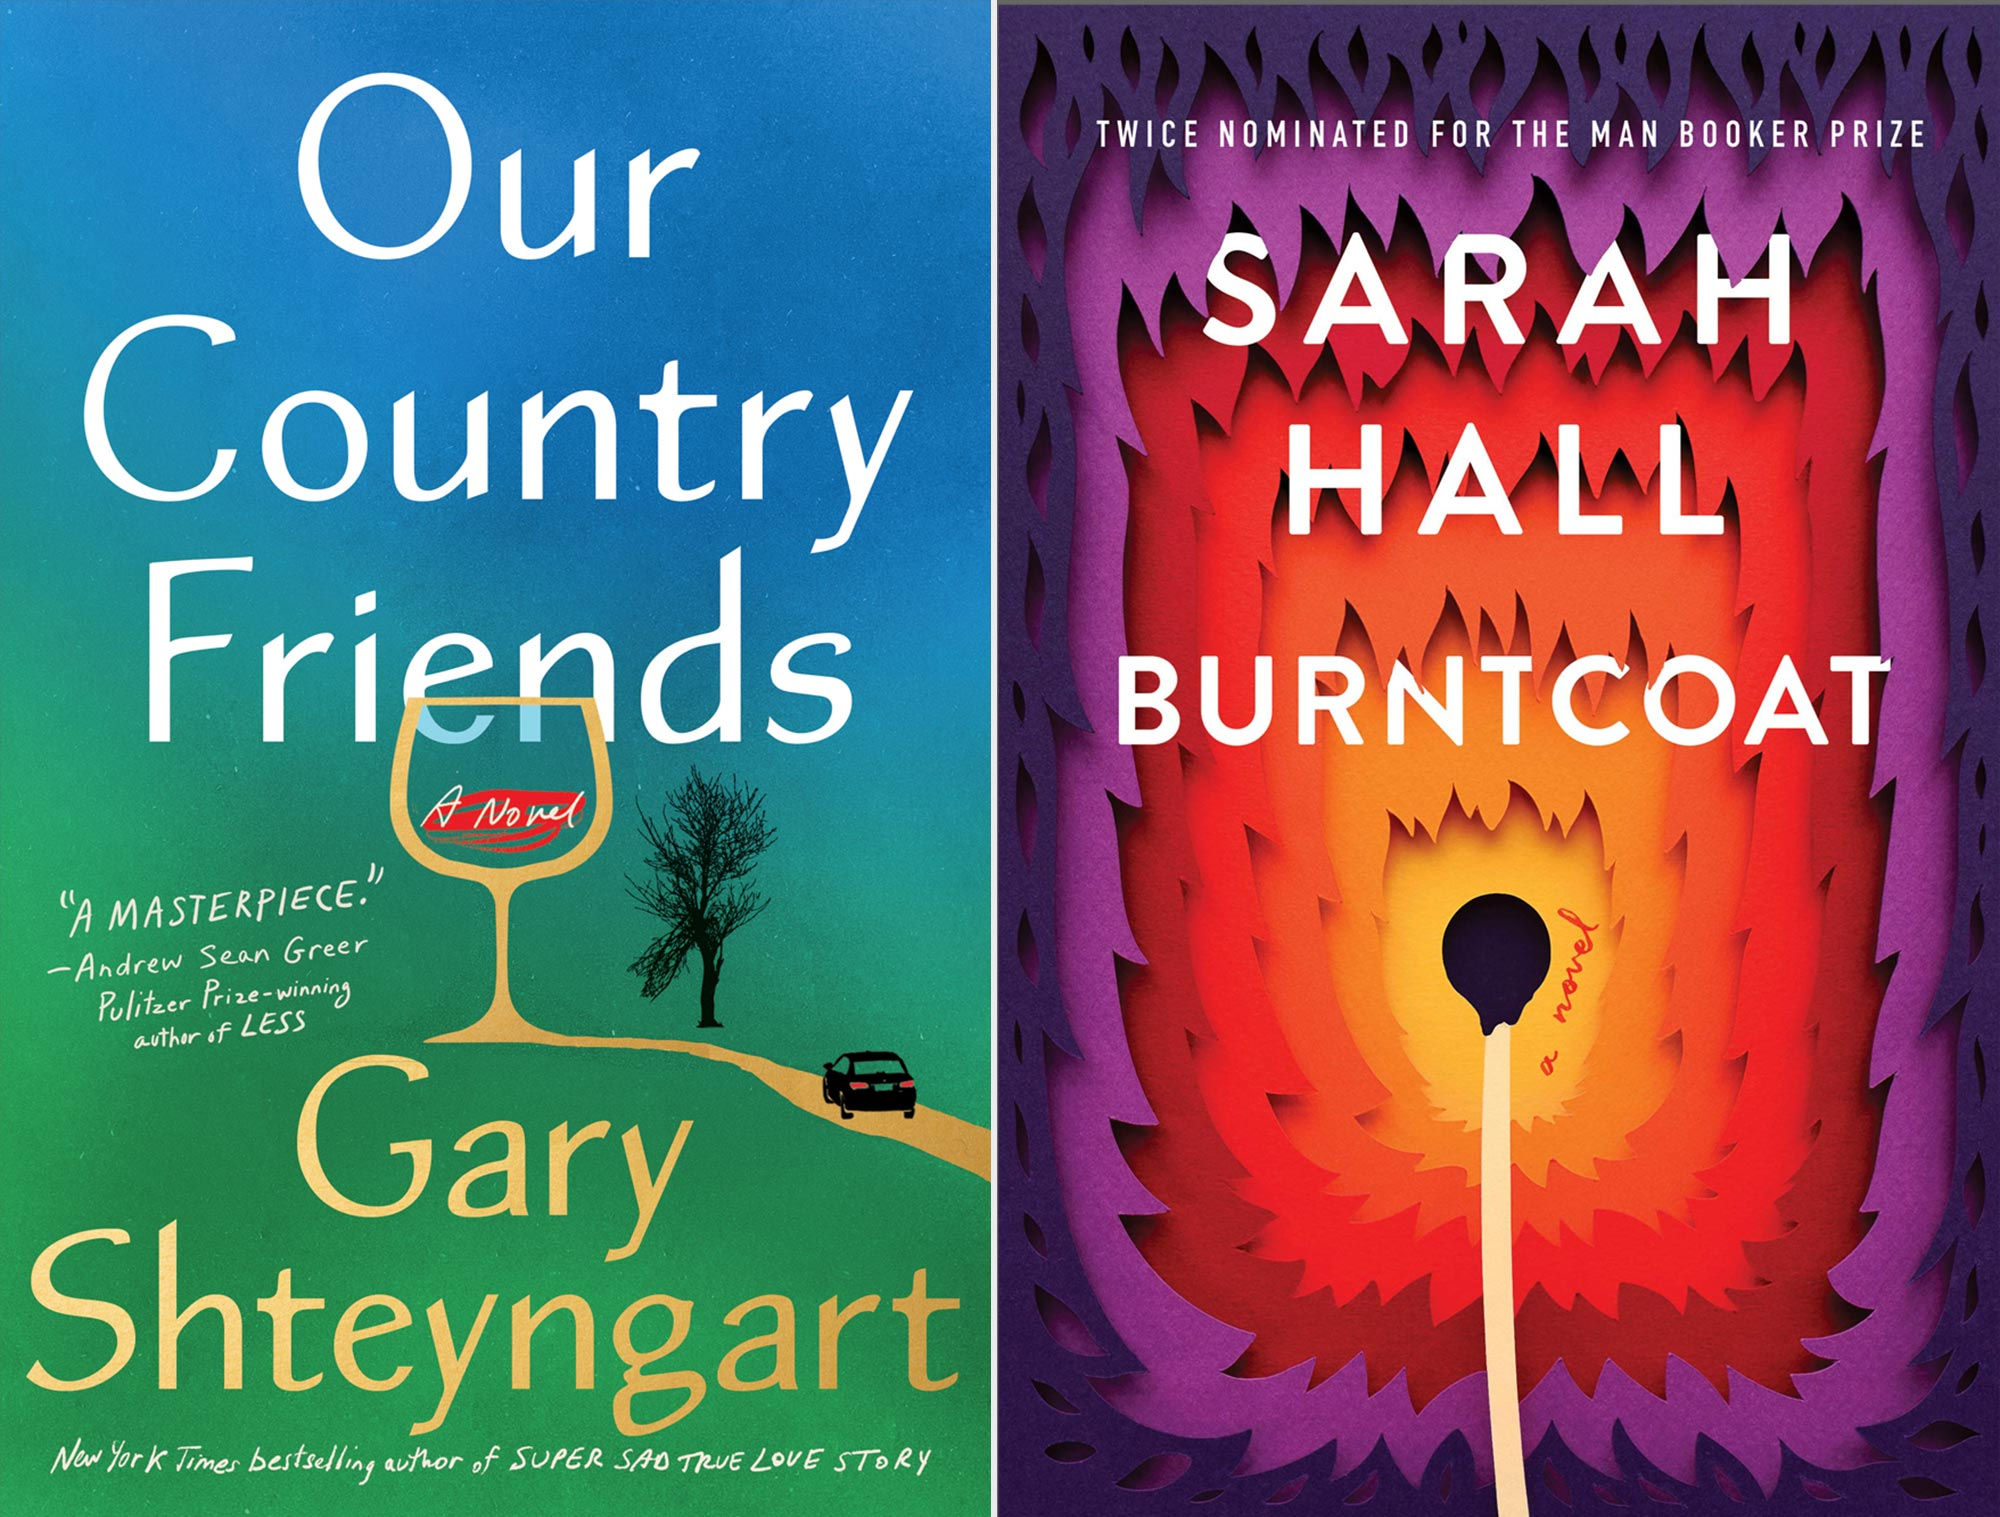 Our Country Friends by Gary Shteyngart; Burntcoat by Sarah Hall